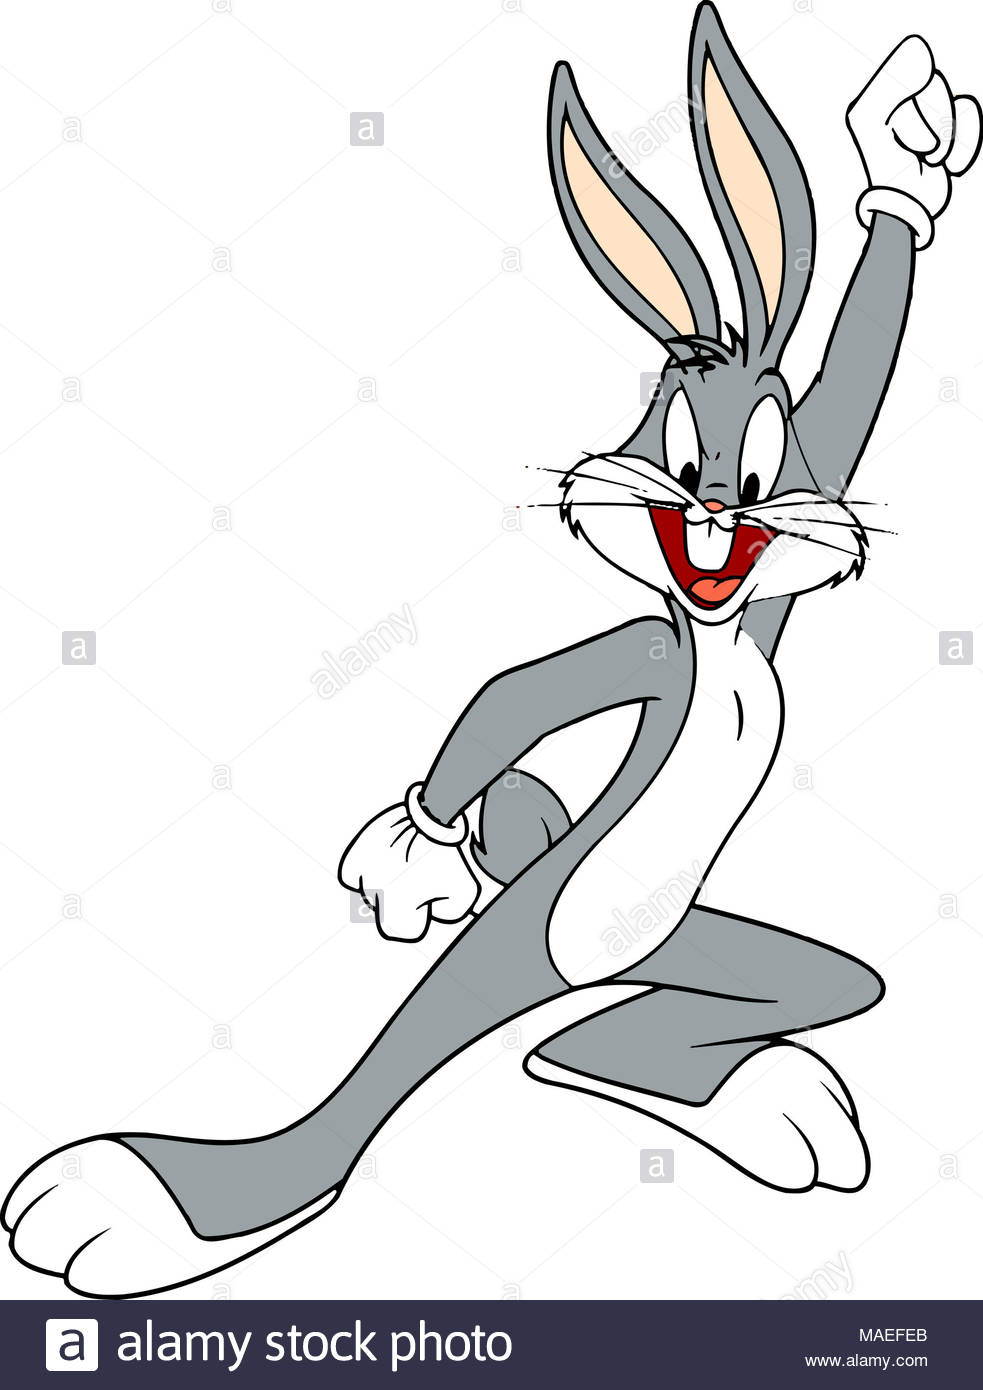 Bugs Bunny Celebrating Character Illustration Cartoon Stock Photo